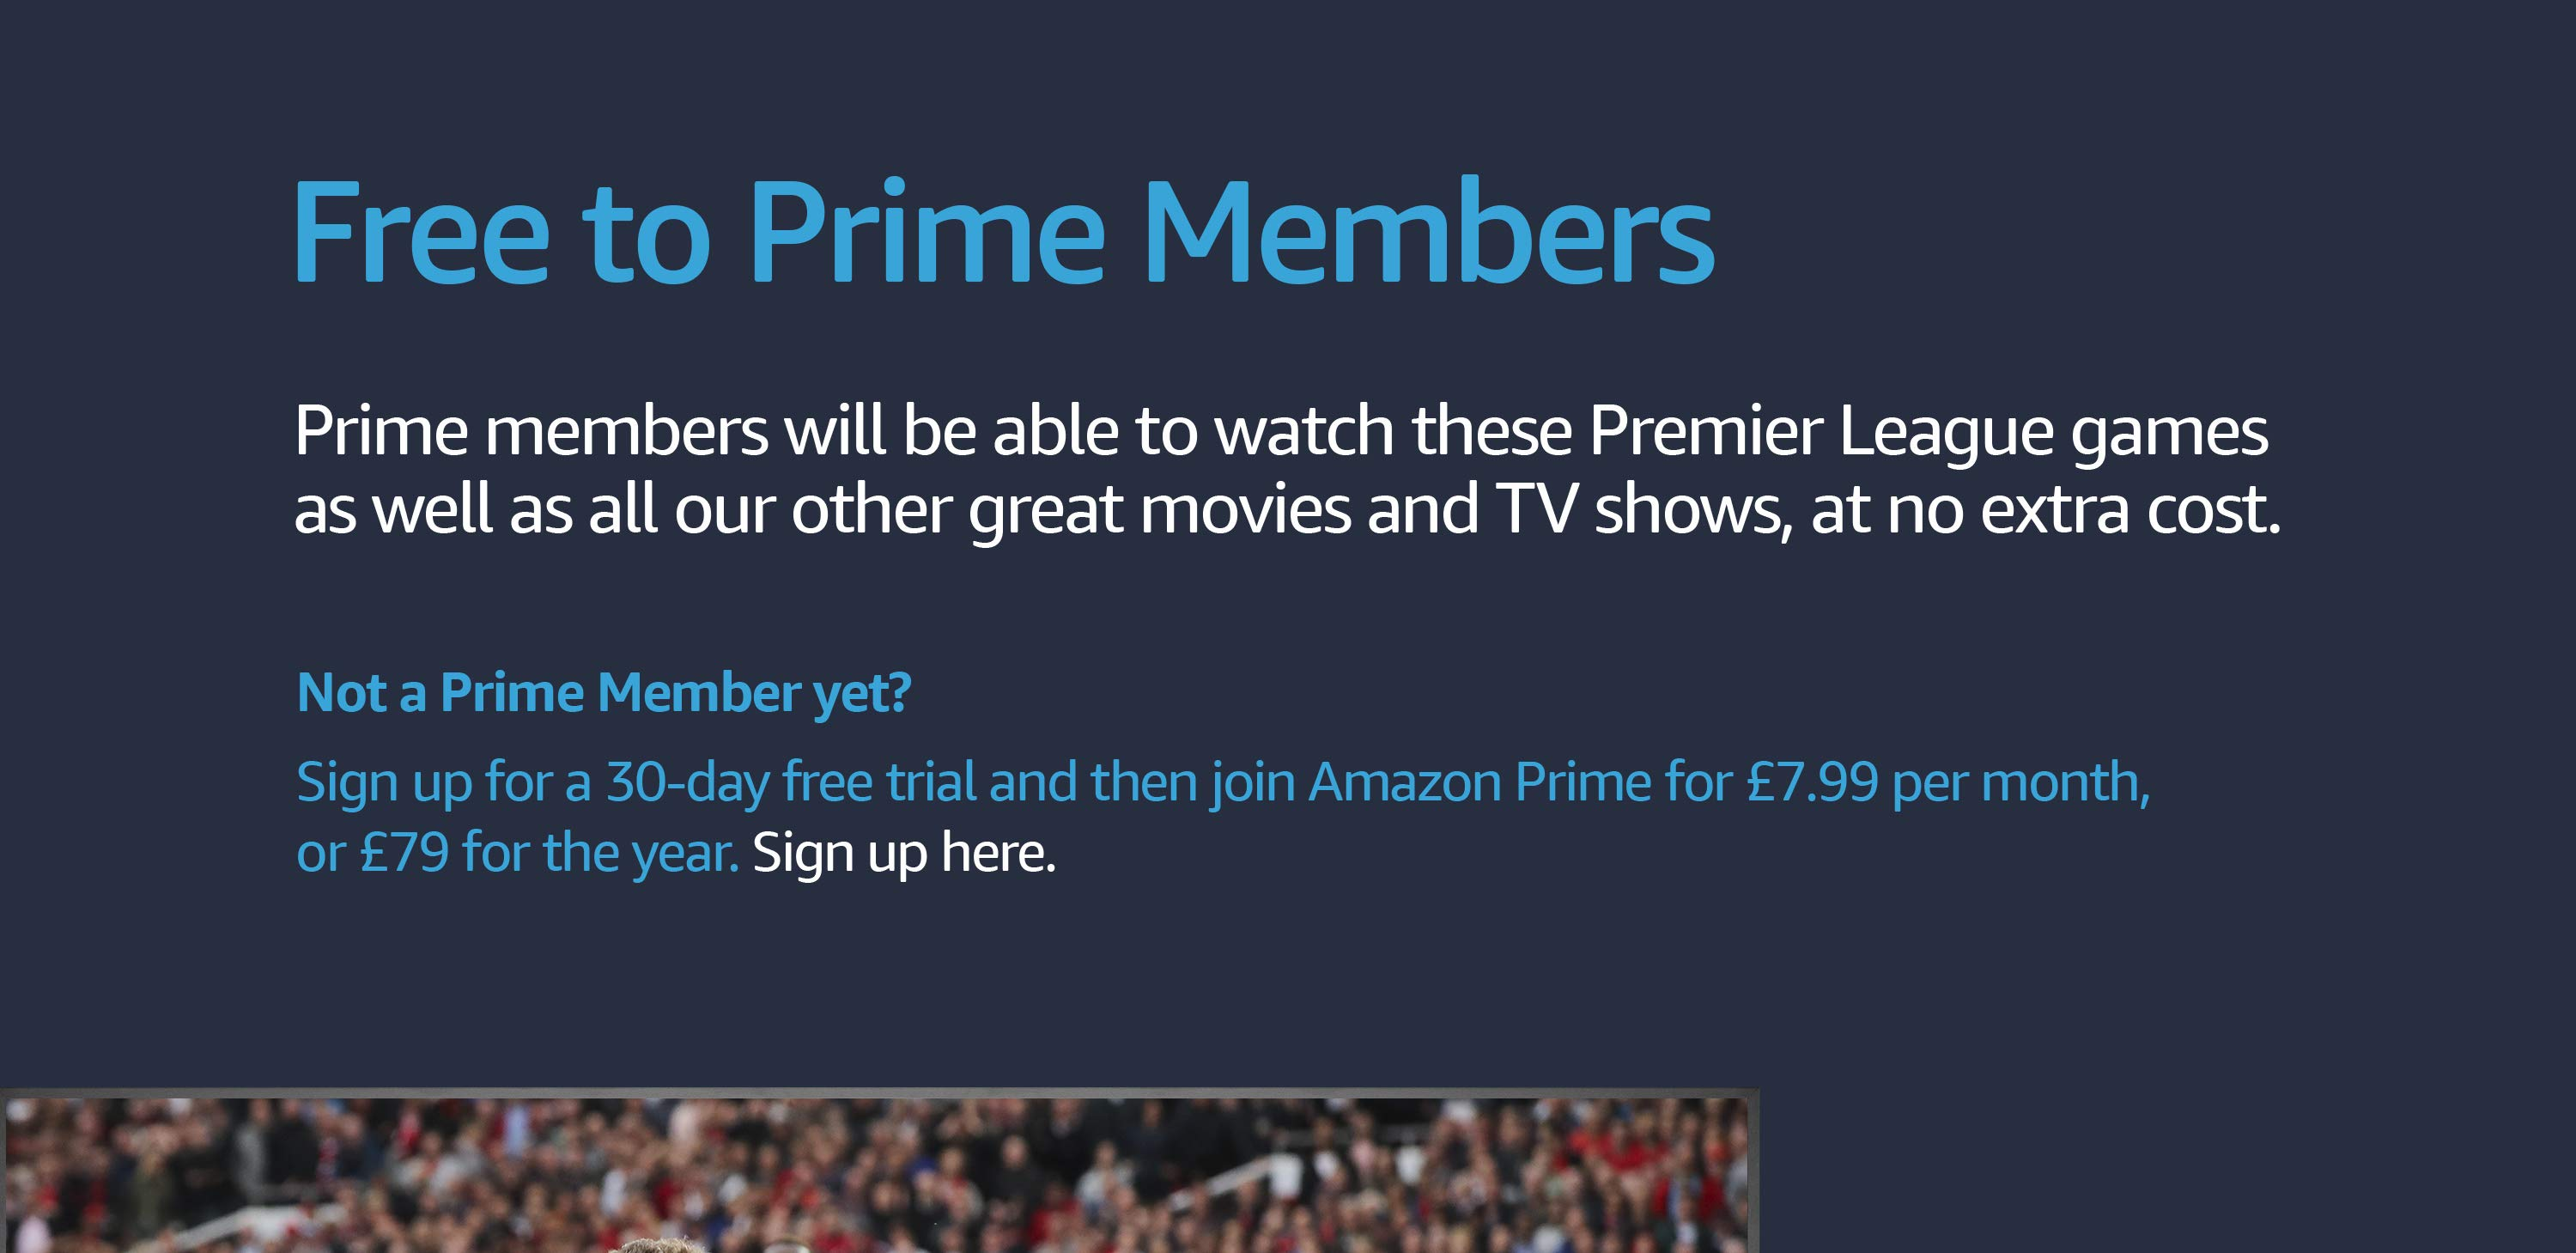 Premier League on Prime Video